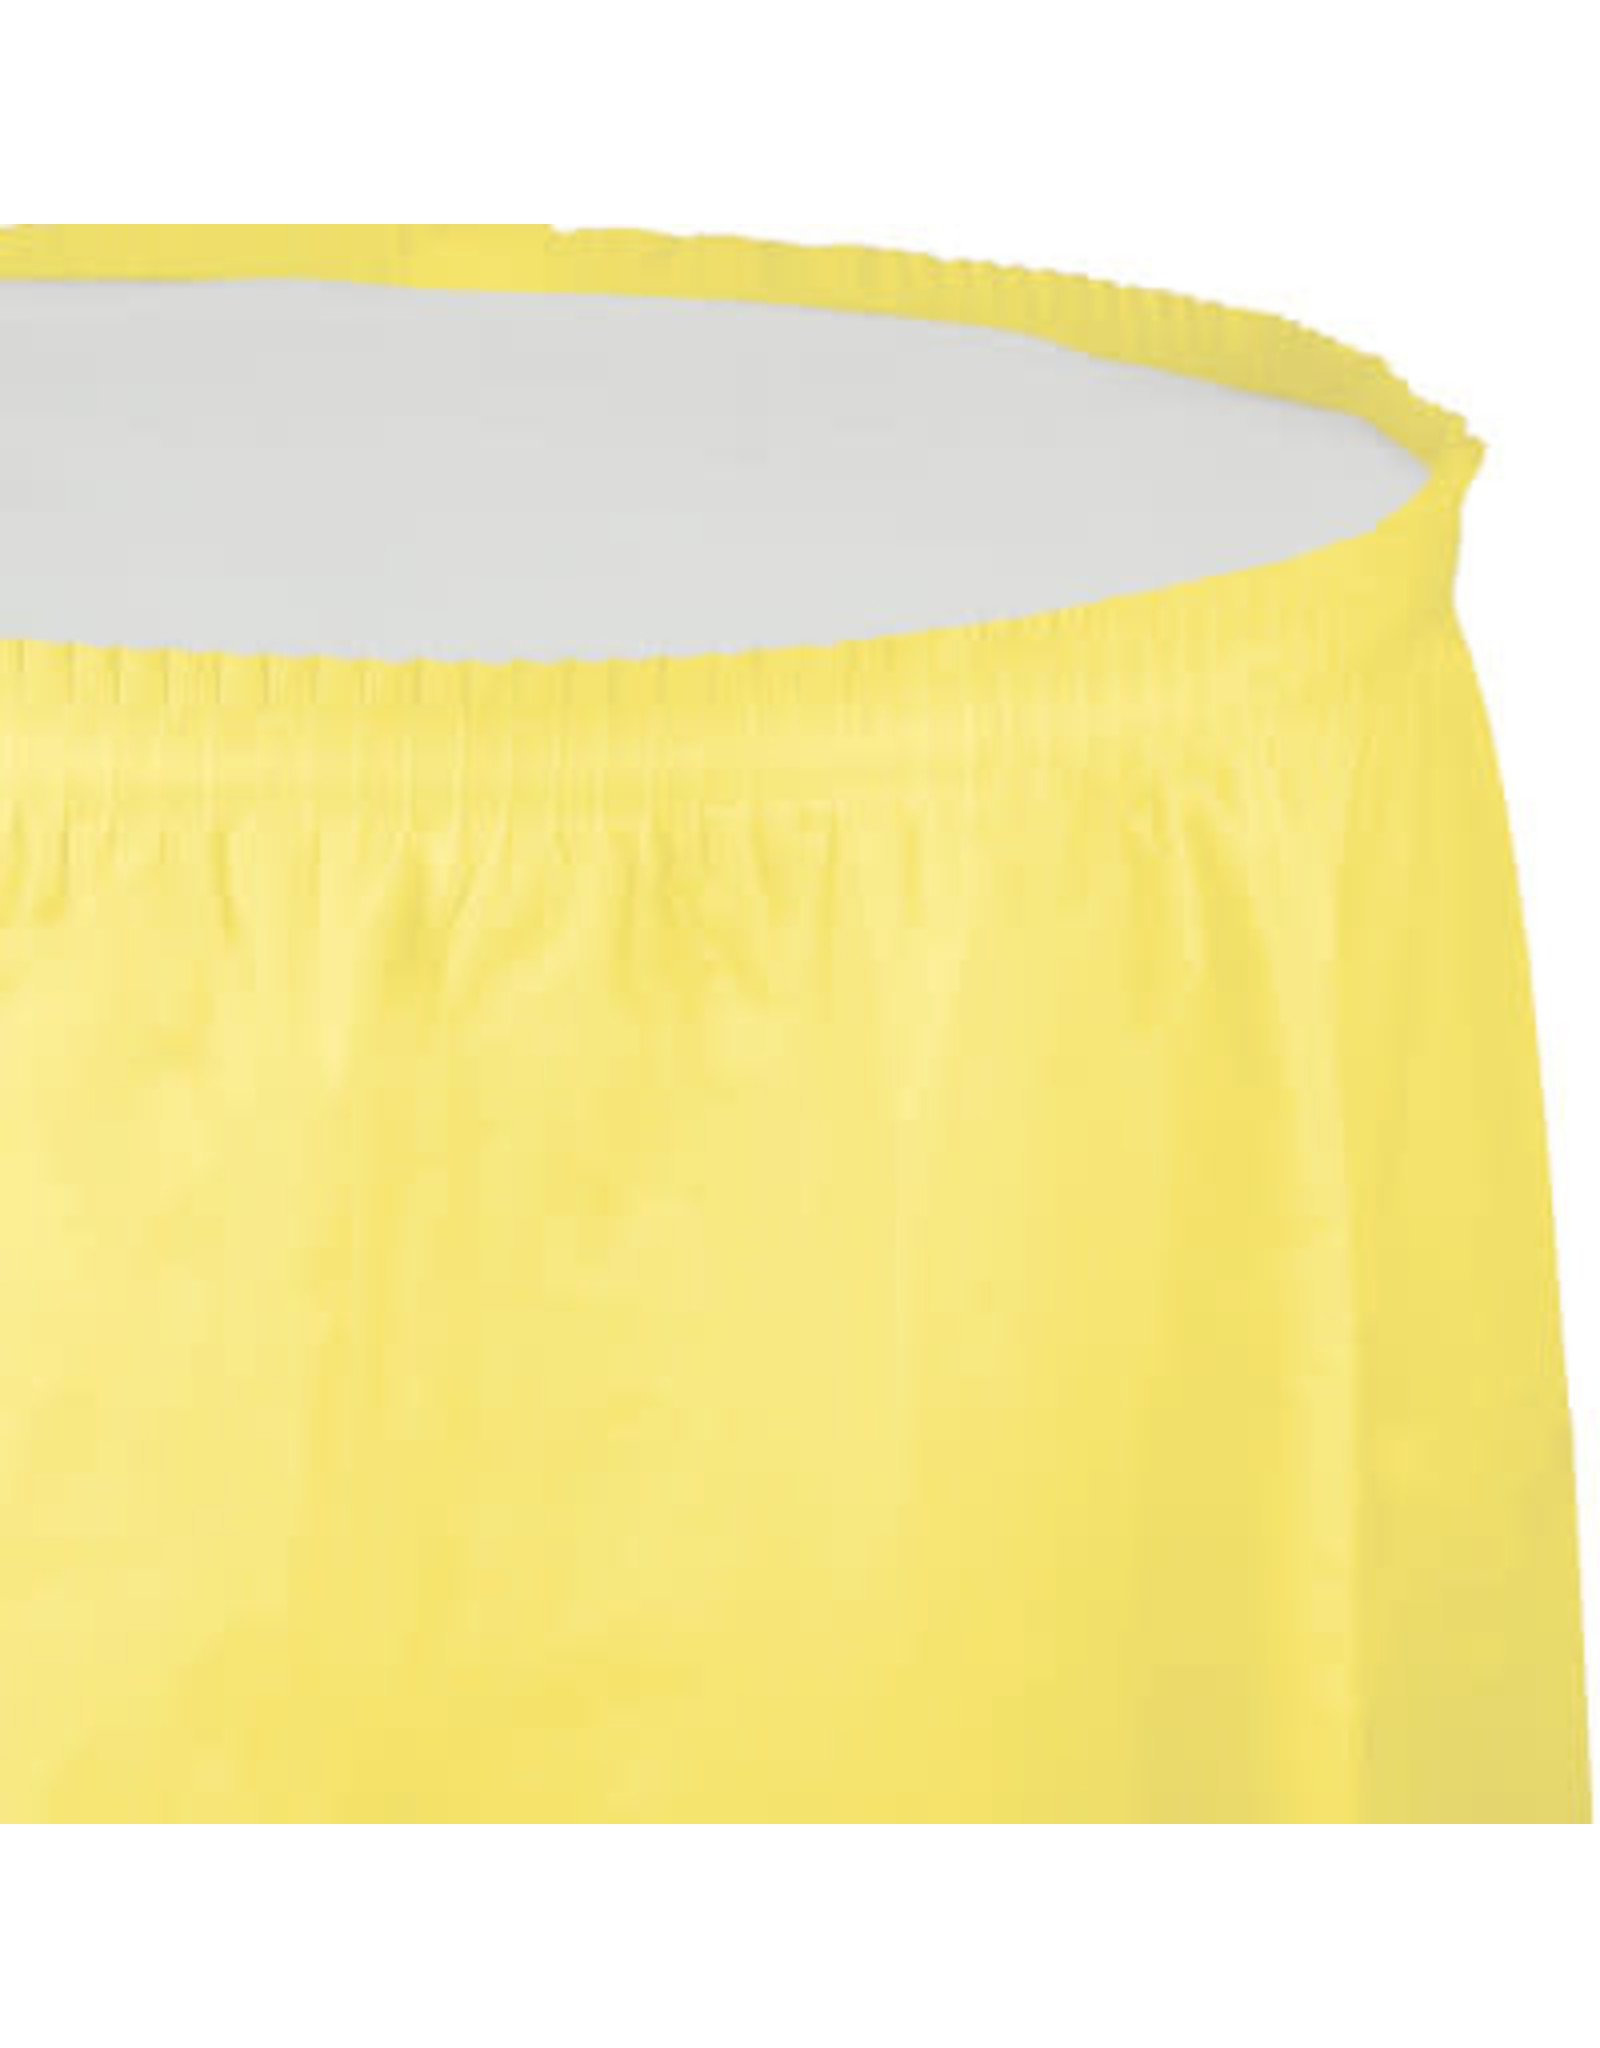 Touch of Color MIMOSA YELLOW PLASTIC TABLESKIRT